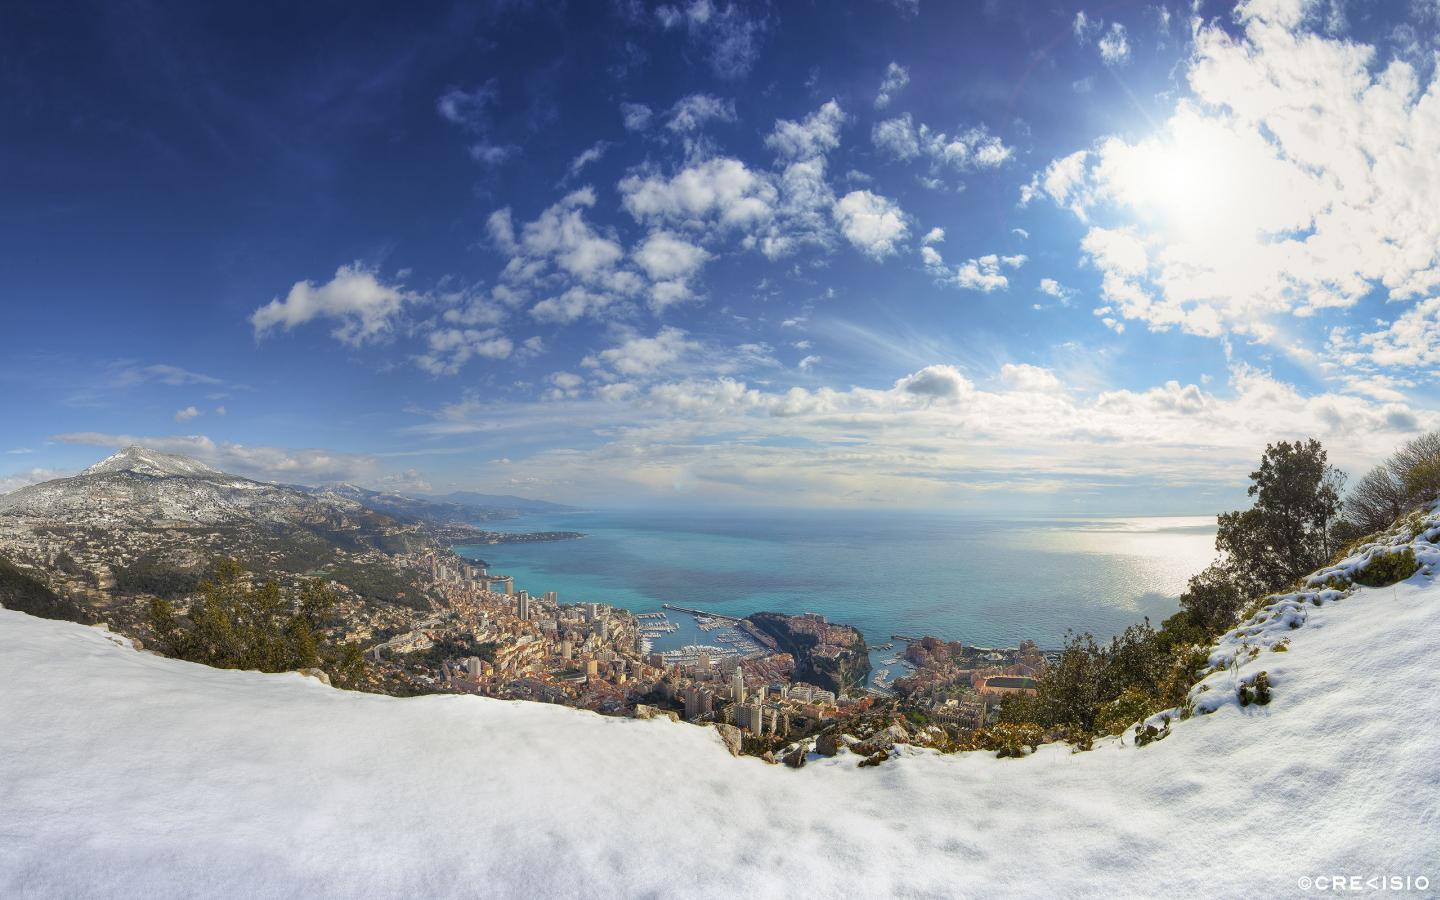 Monaco in Winter by Crevisio